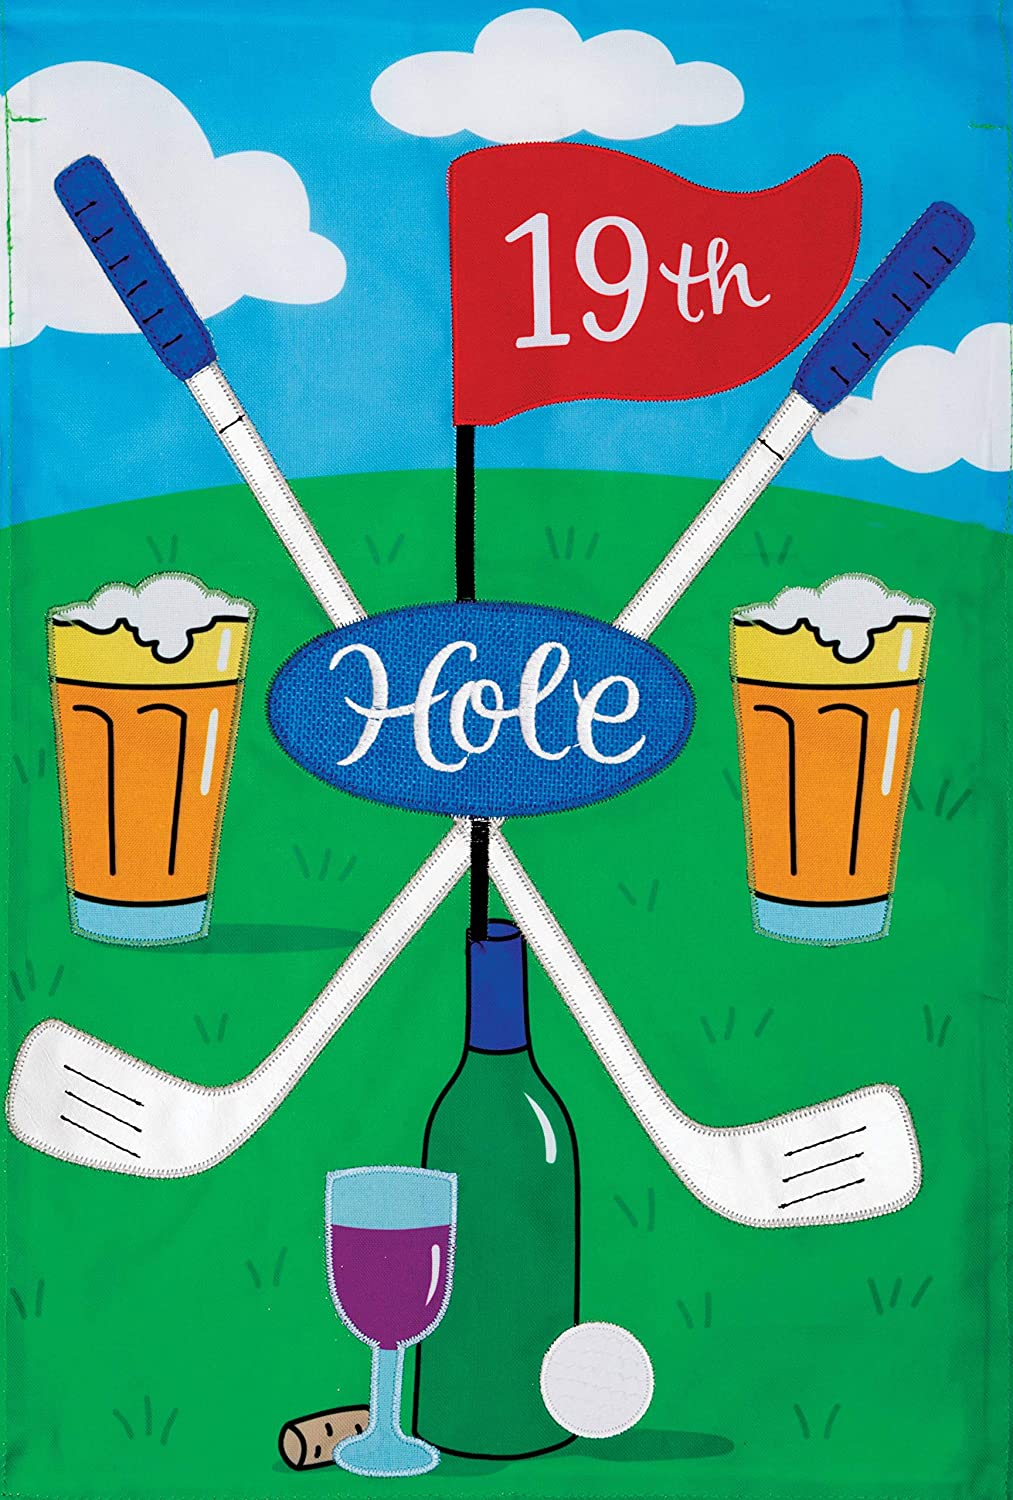 Custom Decor 19th Hole - Garden Size, Emboidered Applique Style, Double Sided Decorative Flag - Approx. 12 Inch X 17.98 Inch